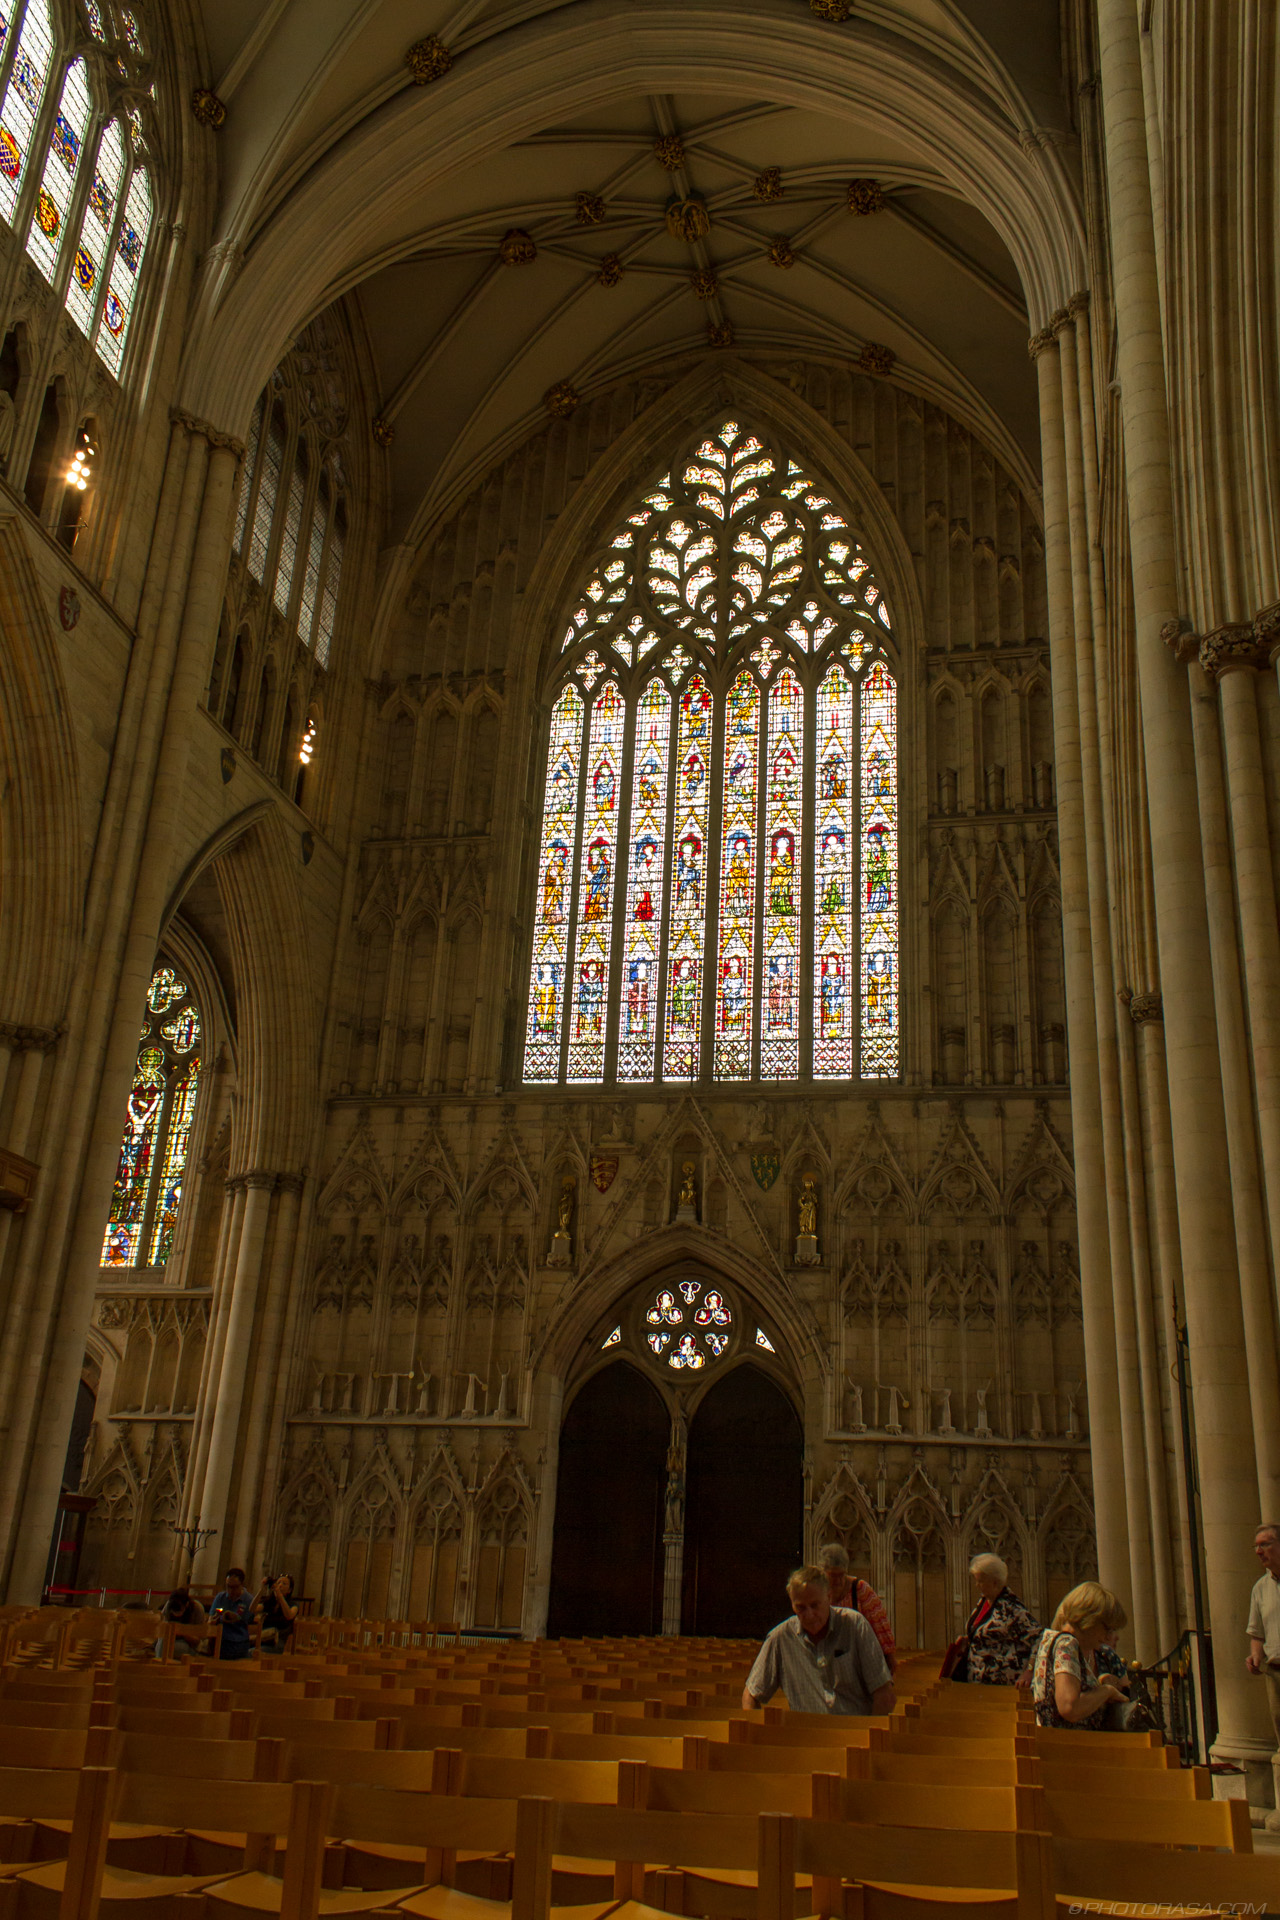 http://photorasa.com/places/yorkminster-cathedral/attachment/west-stained-glass-in-the-nave/